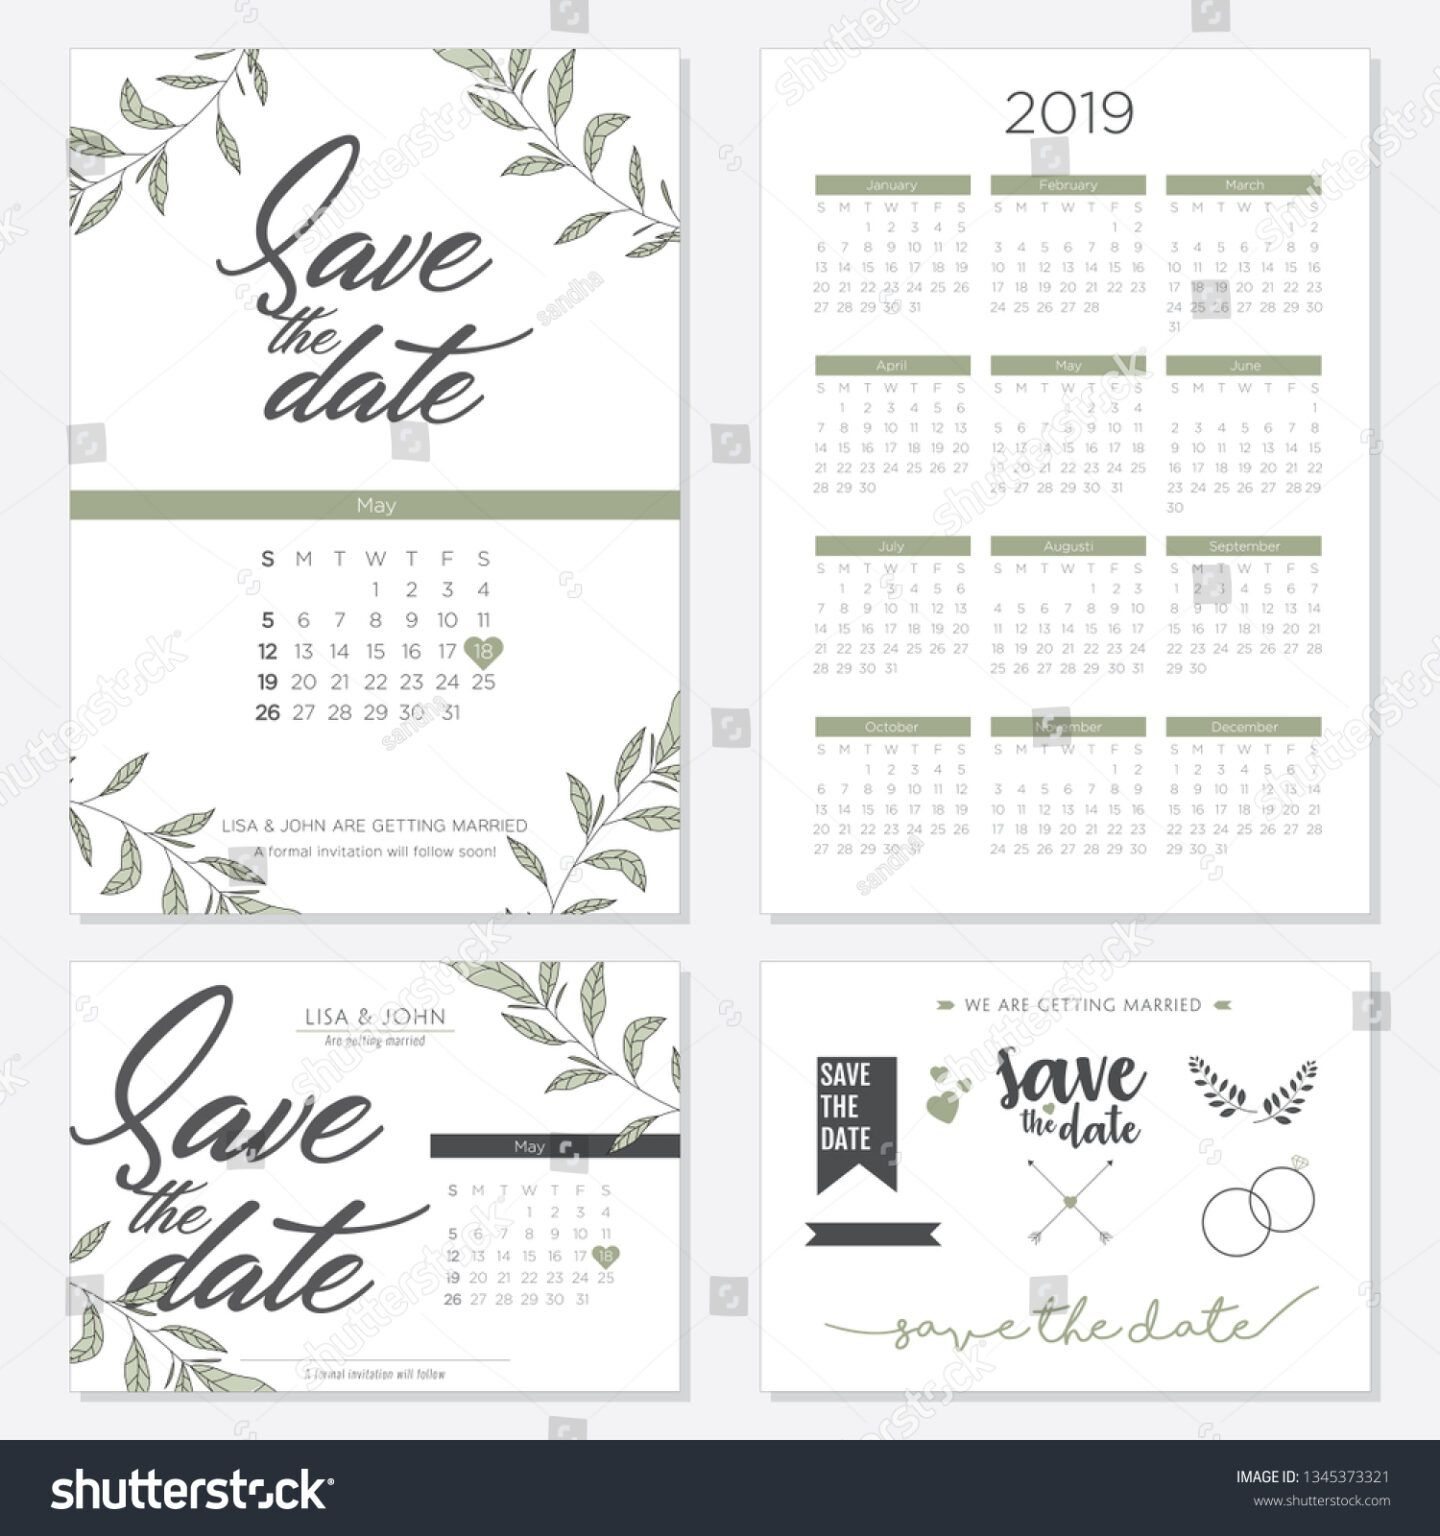 Pin on Amazing Template Ideas